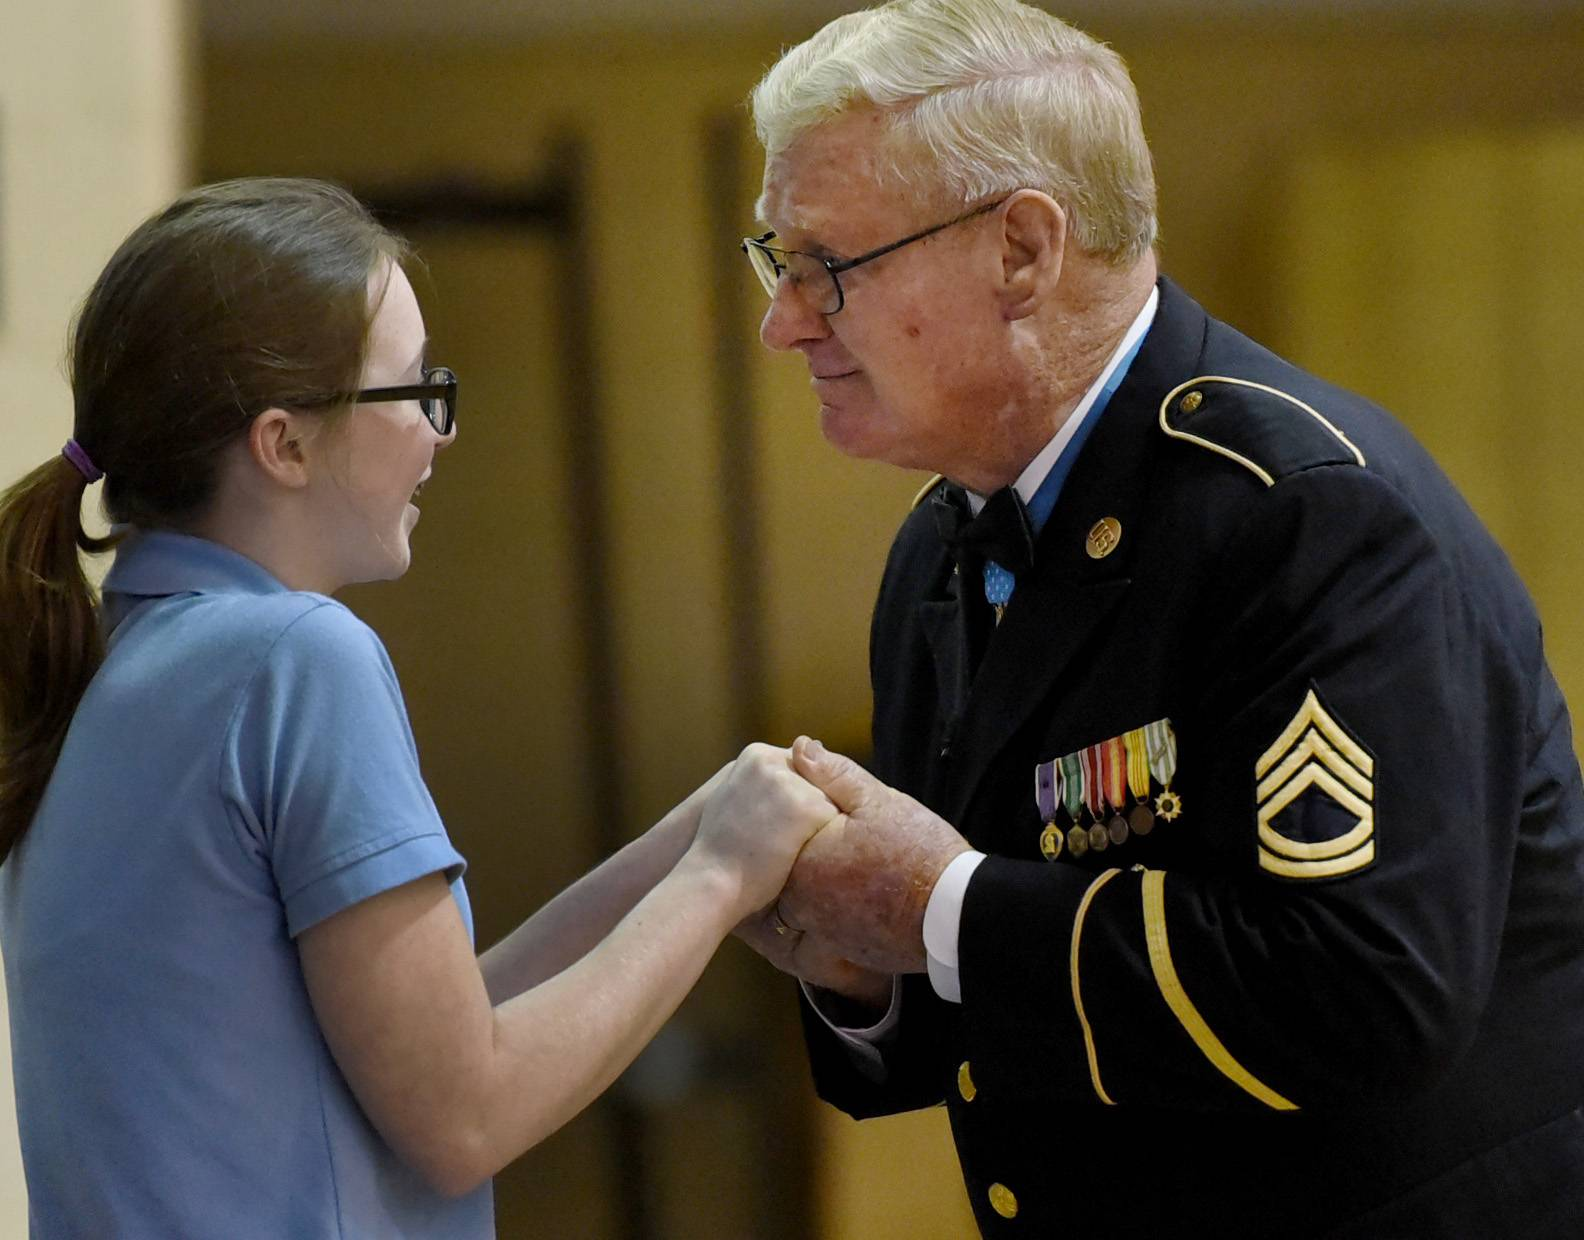 Retired Army Sgt. Sammy L. Davis greets and hugs St. Viator High School sophomore Sarah Conneely after she asked a question Monday during an assembly at the Arlington Heights school.